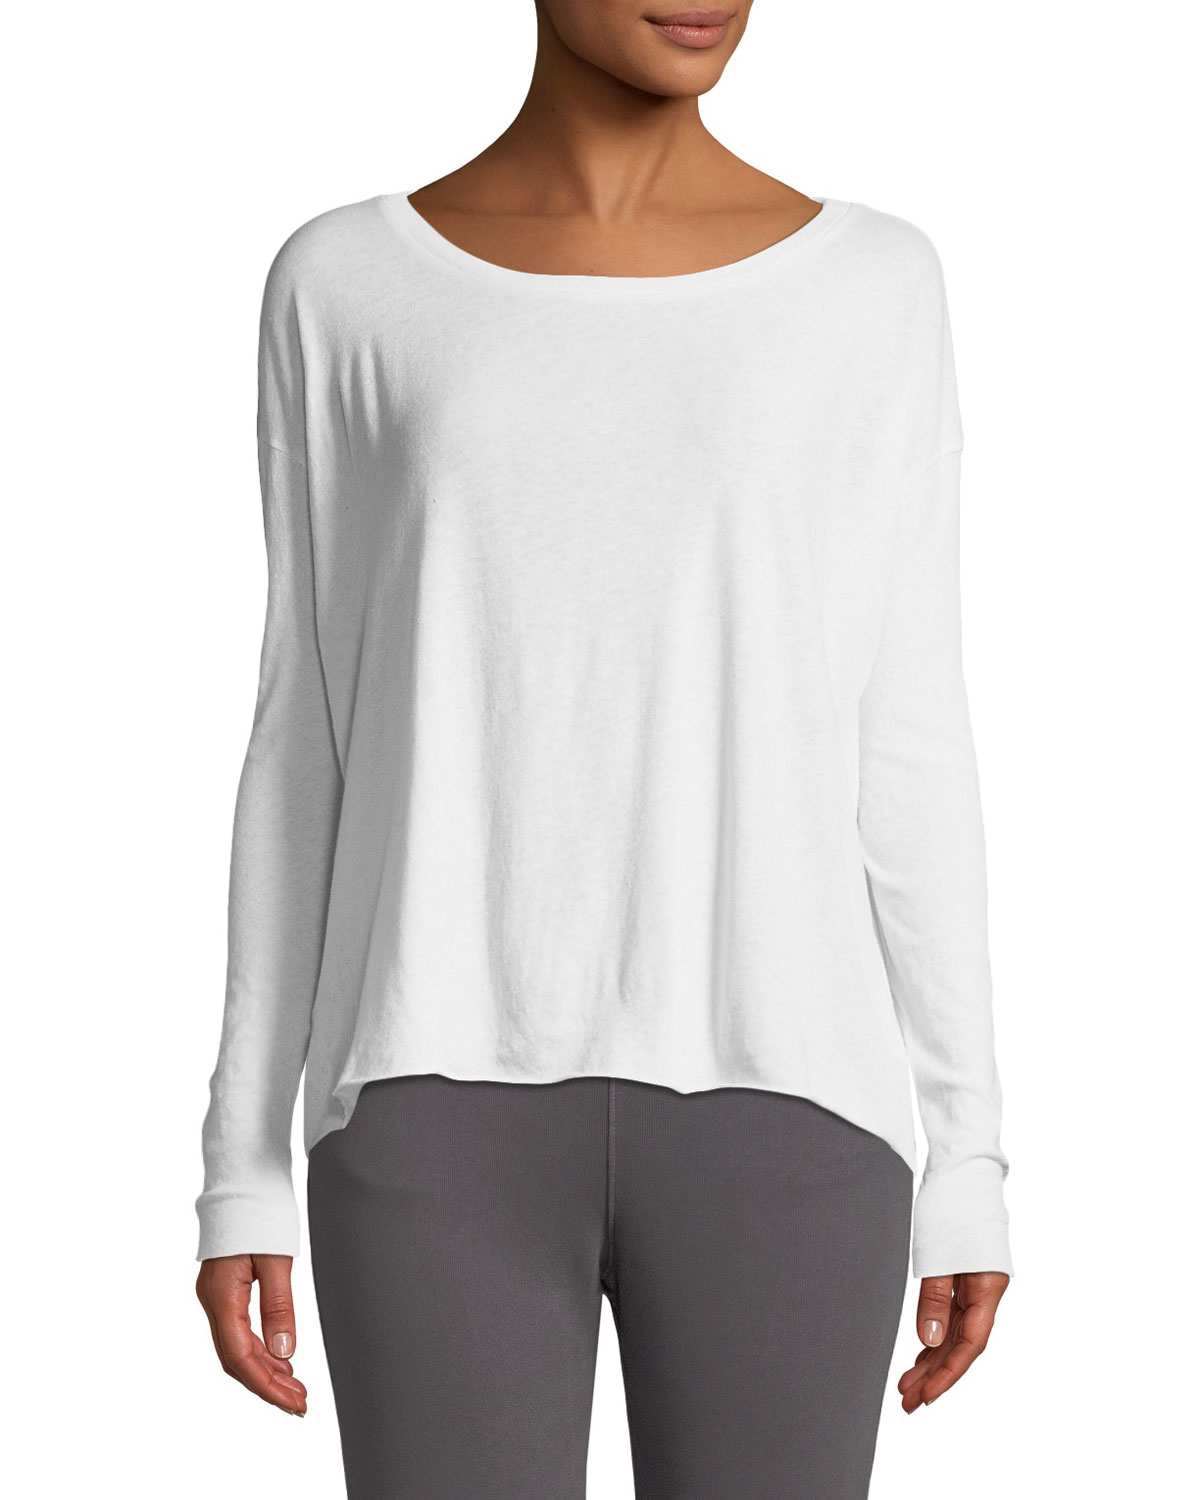 Core Cotton Long-Sleeve Tee in White